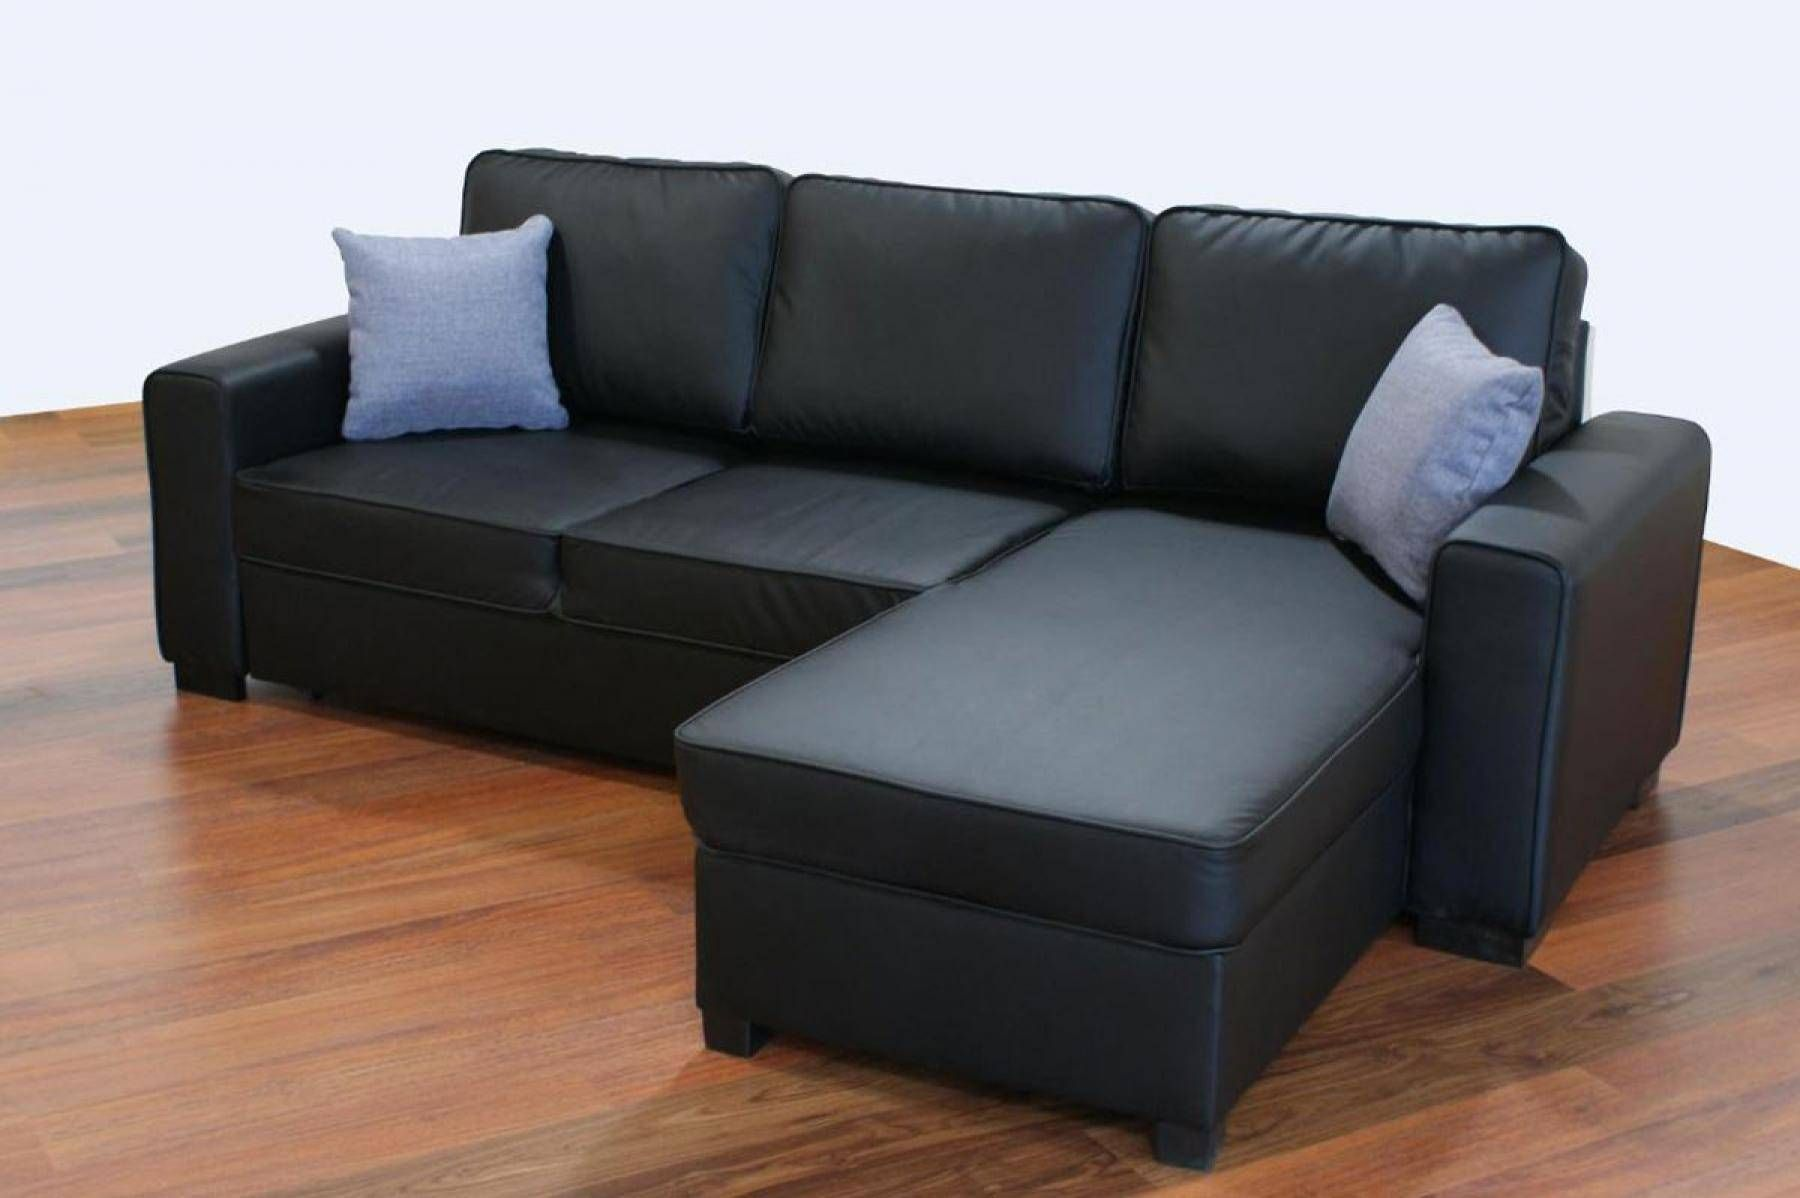 Canape Angle Simili Cuir S Canape Angle Pas Cher Simili Cuir Canape Angle Simili Cuir Acheter Canape Angle Convertible Simili In 2020 Sectional Couch Home Decor Alinea